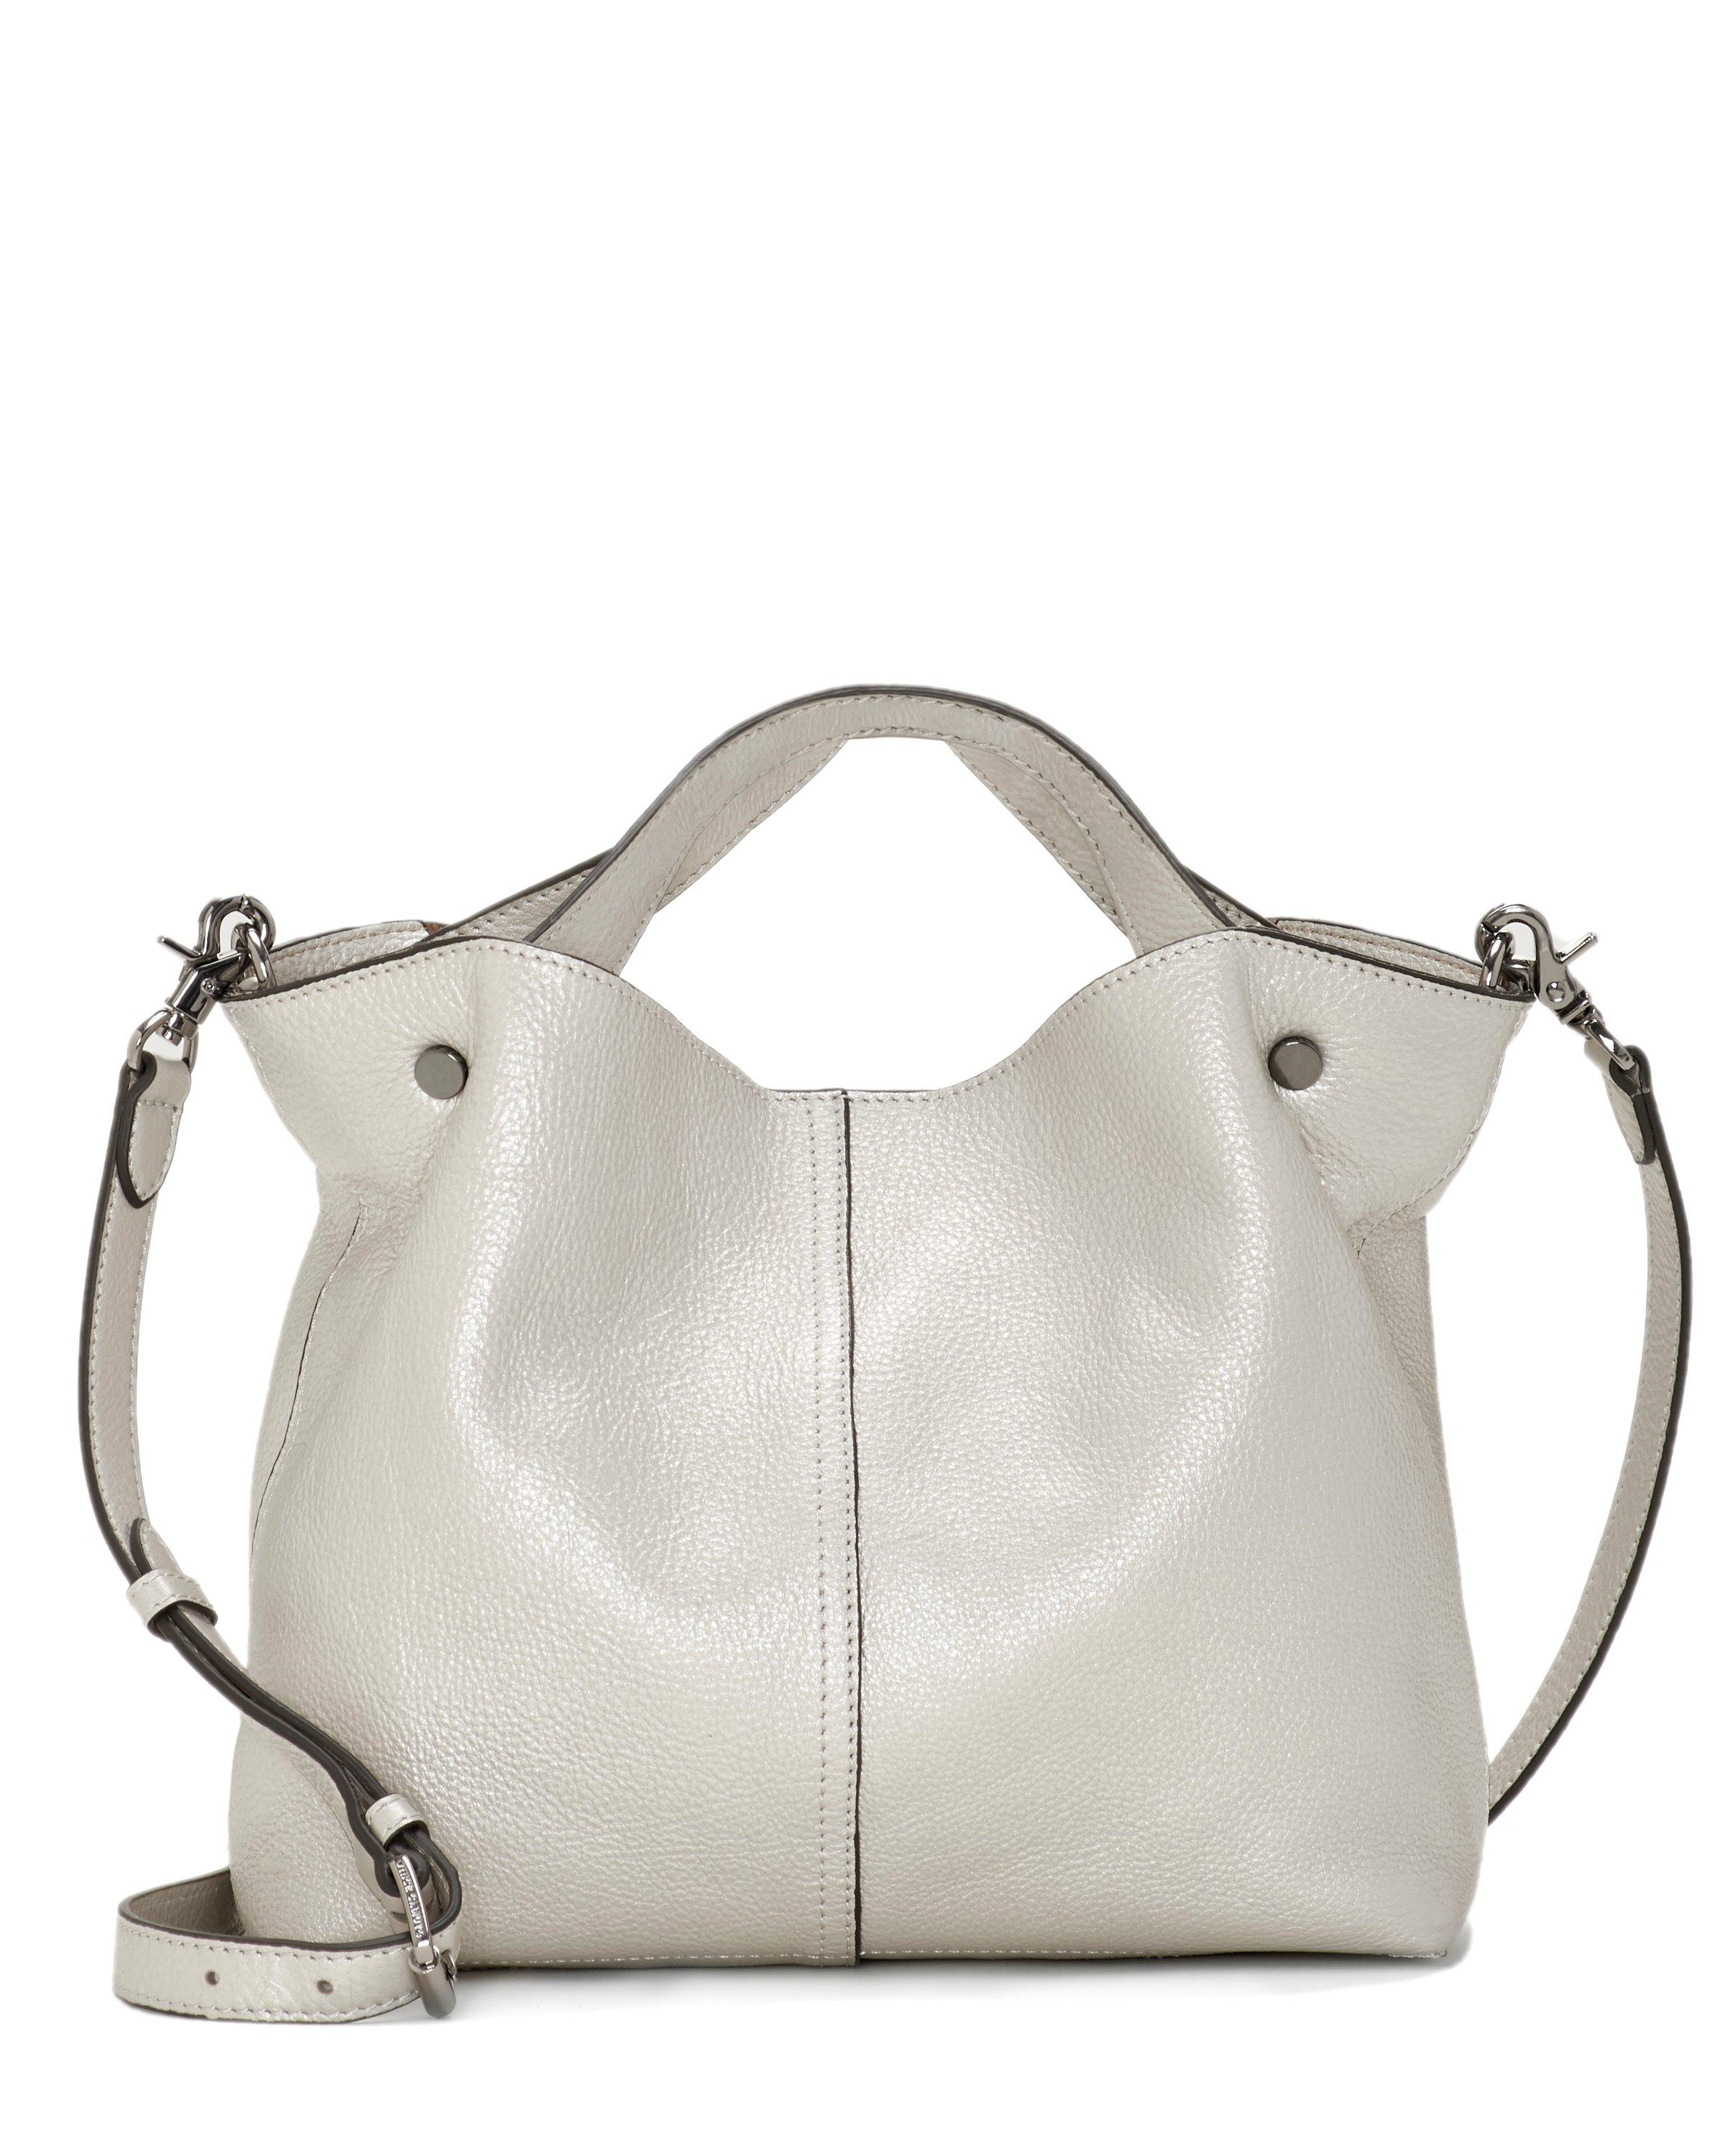 Vince Camuto Niki – Stud-accent Small Tote in Metallic - Lyst 3cdc2bb5d5eba